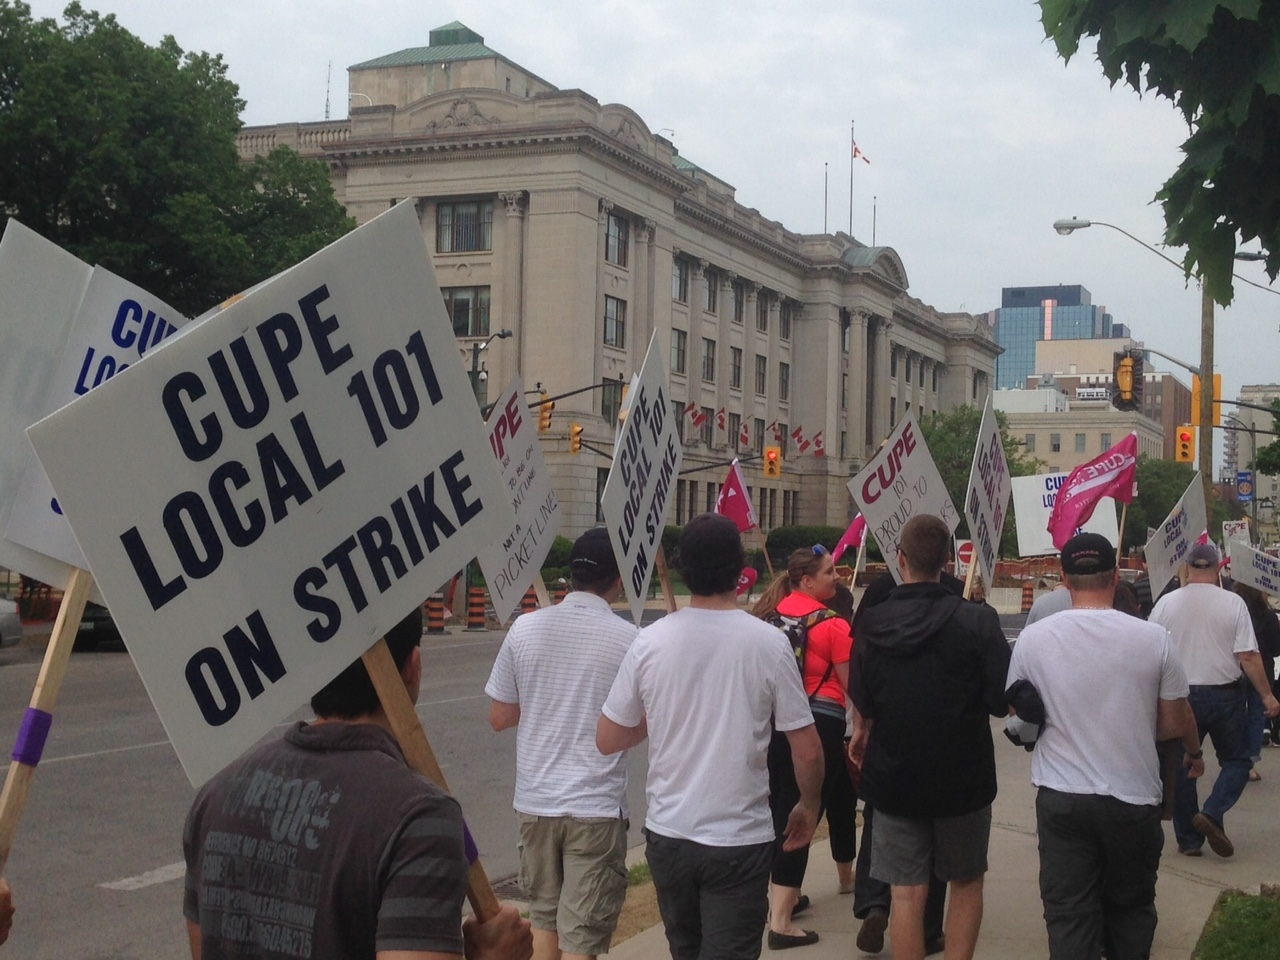 CUPE Local 101 and City head back to bargaining table